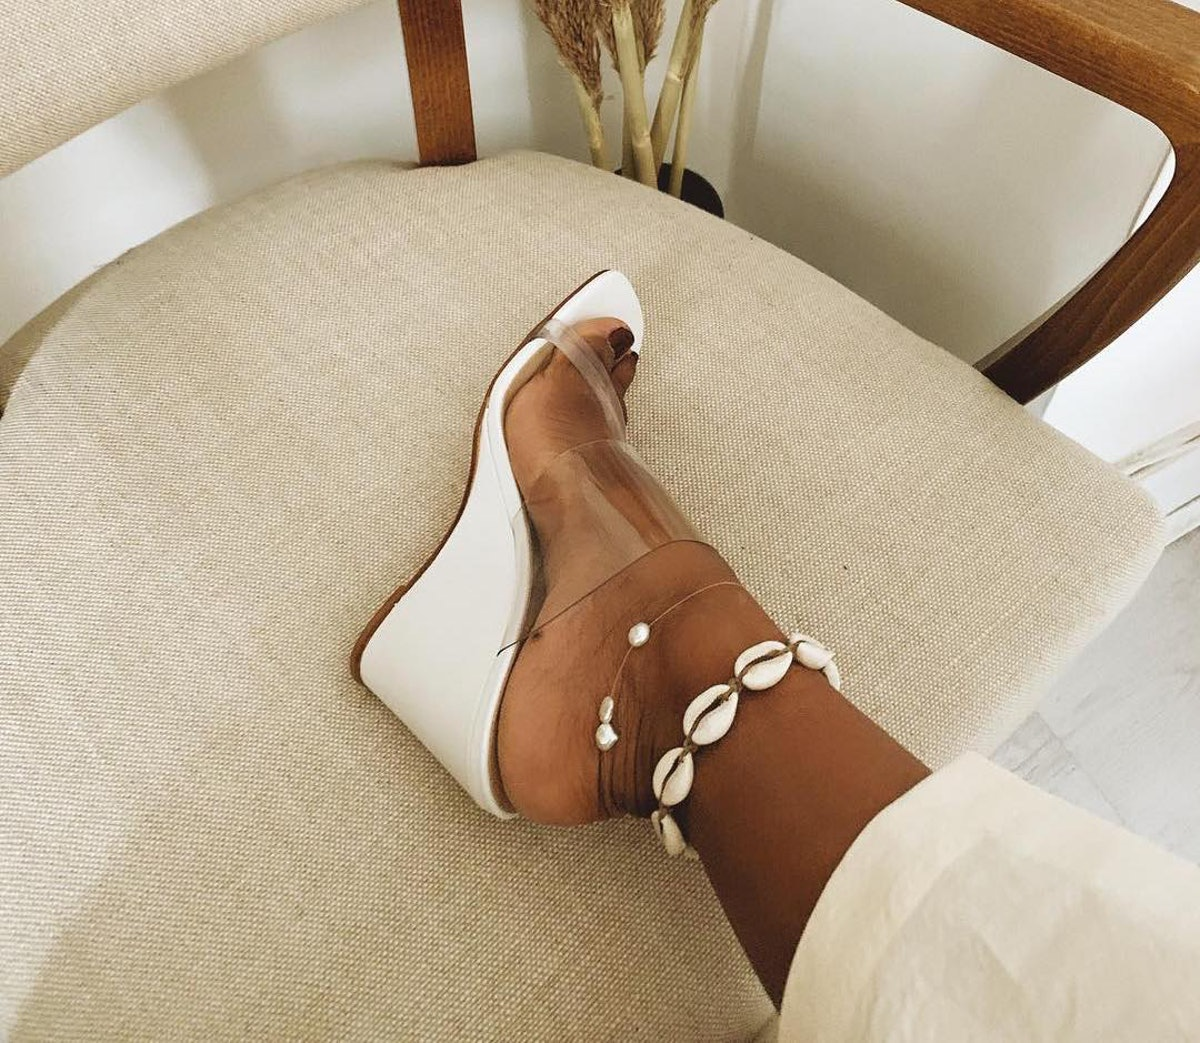 5 Summer Jewelry Trends Taking Over Instagram Right Now